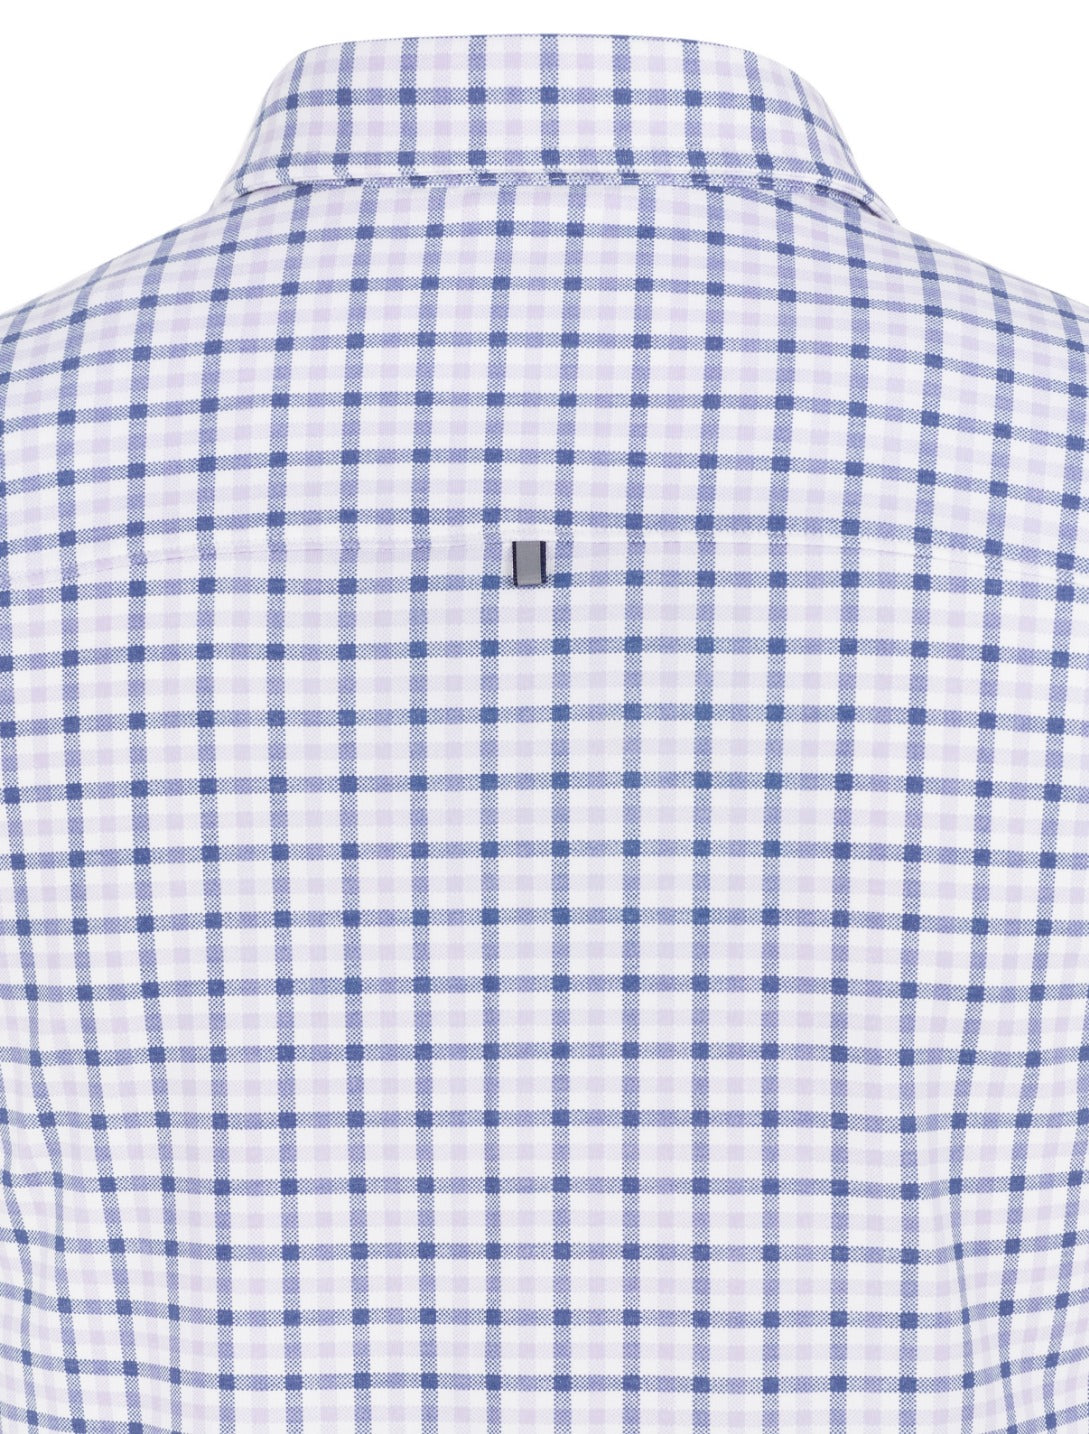 Lavender Check Performance Knit Long Sleeve Shirt